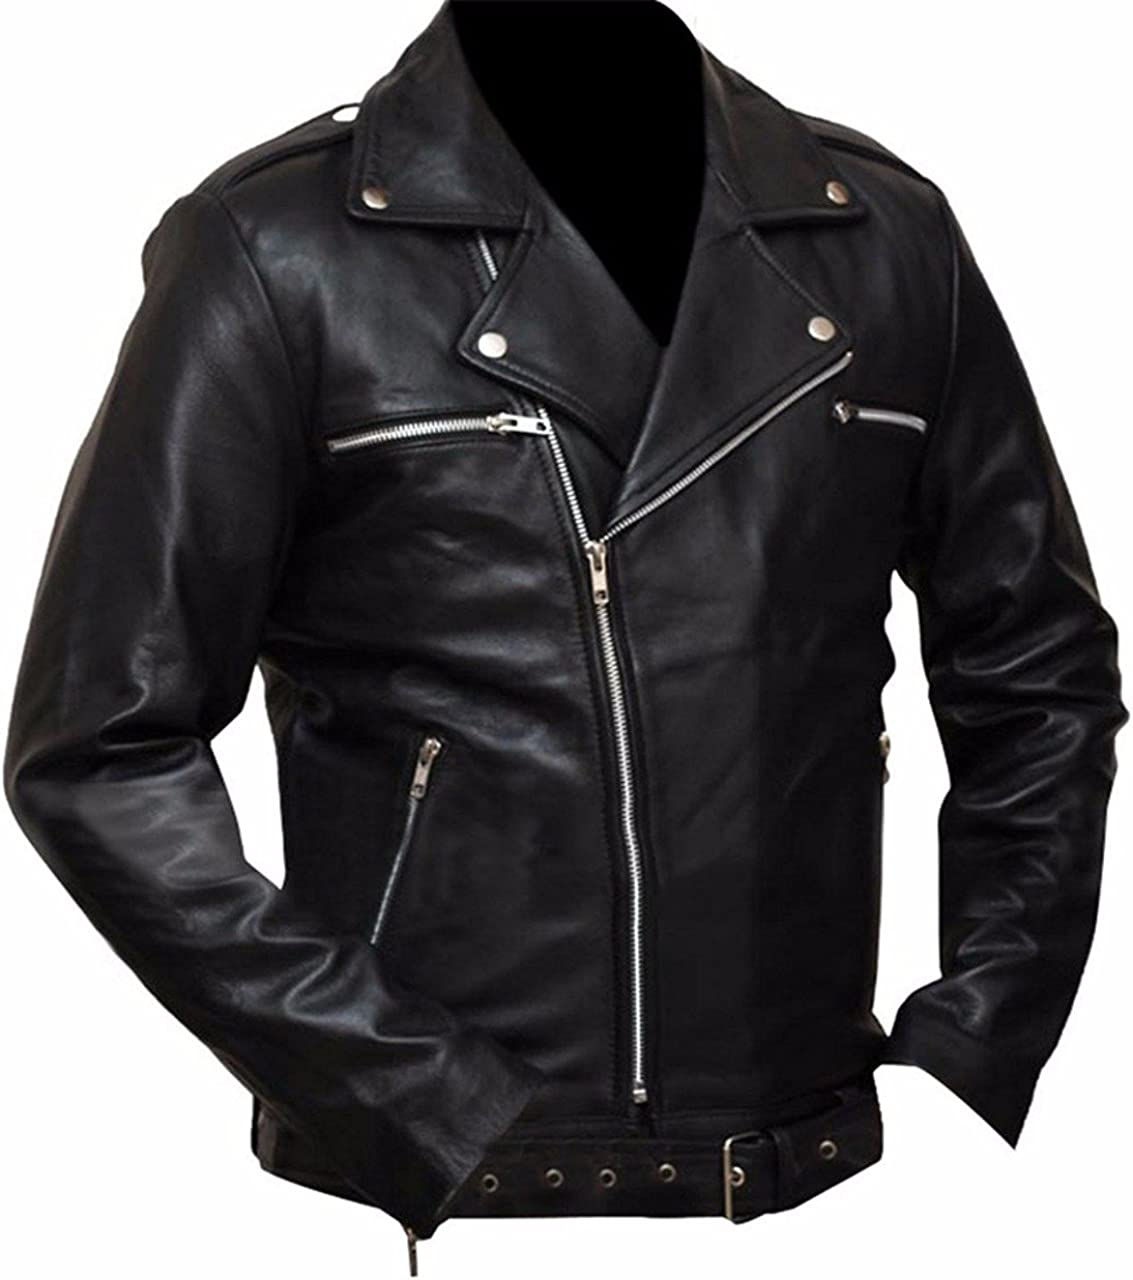 Stormwise Mens Fashion Brando Style Walking Dead Leather Jacket